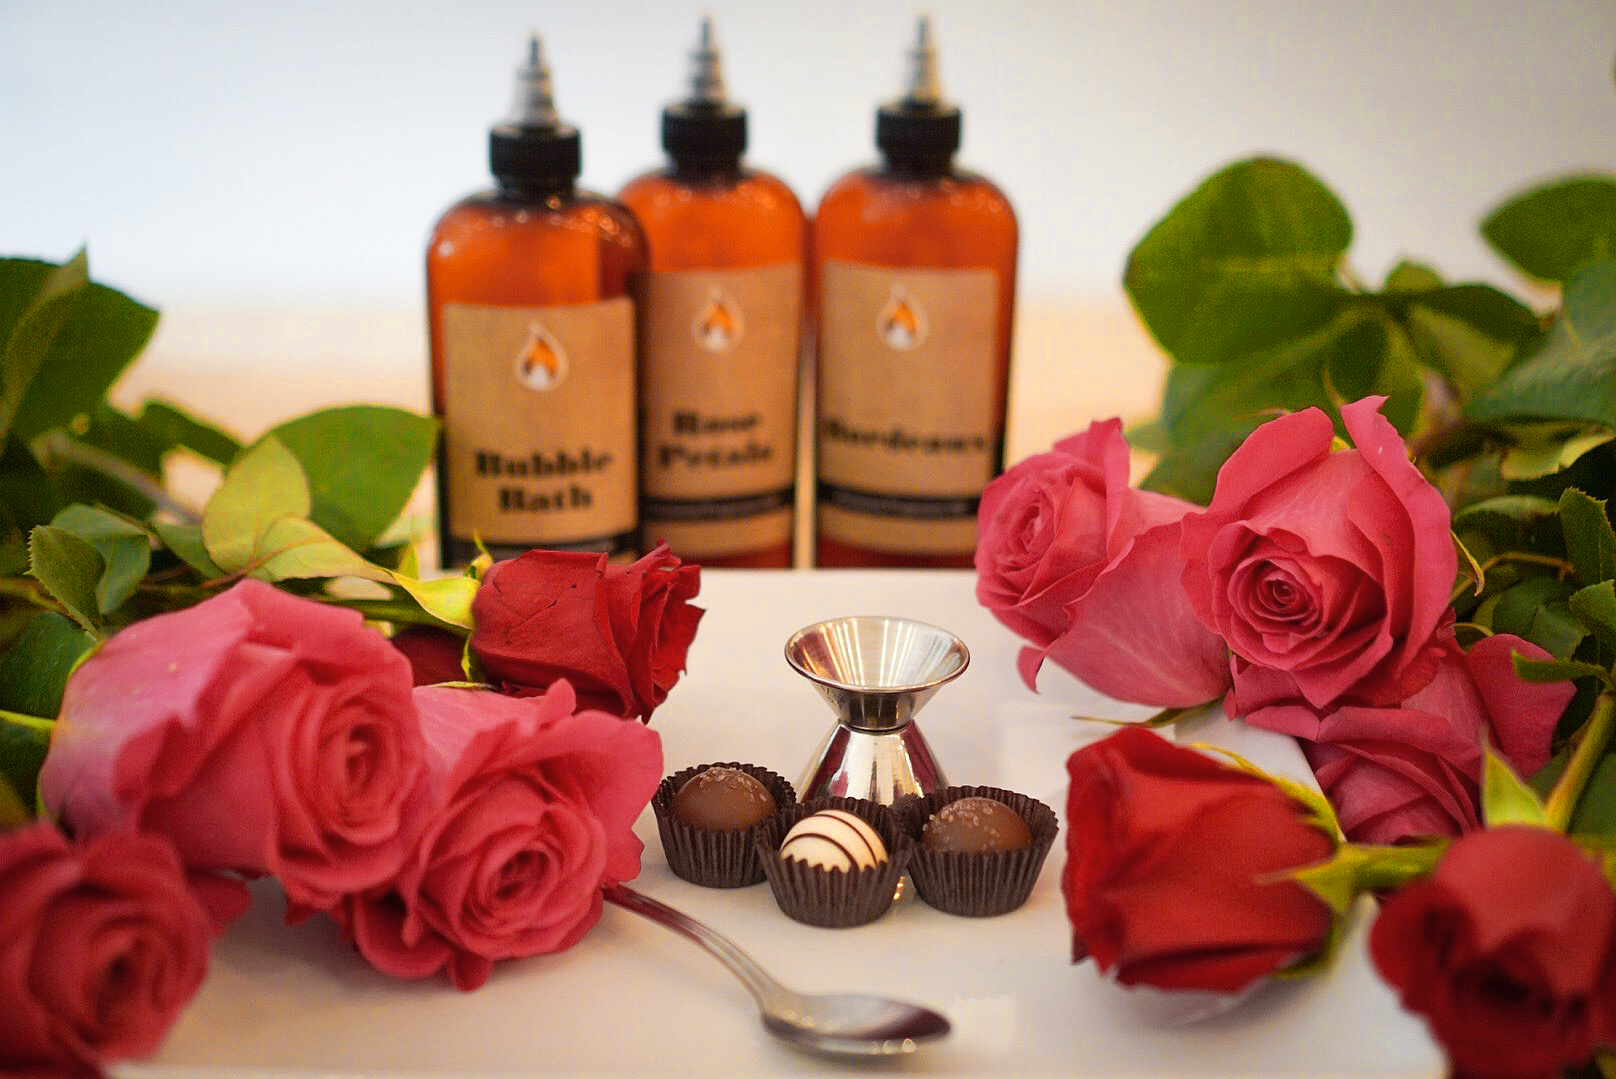 Scentcerely Yours Valentine's Day